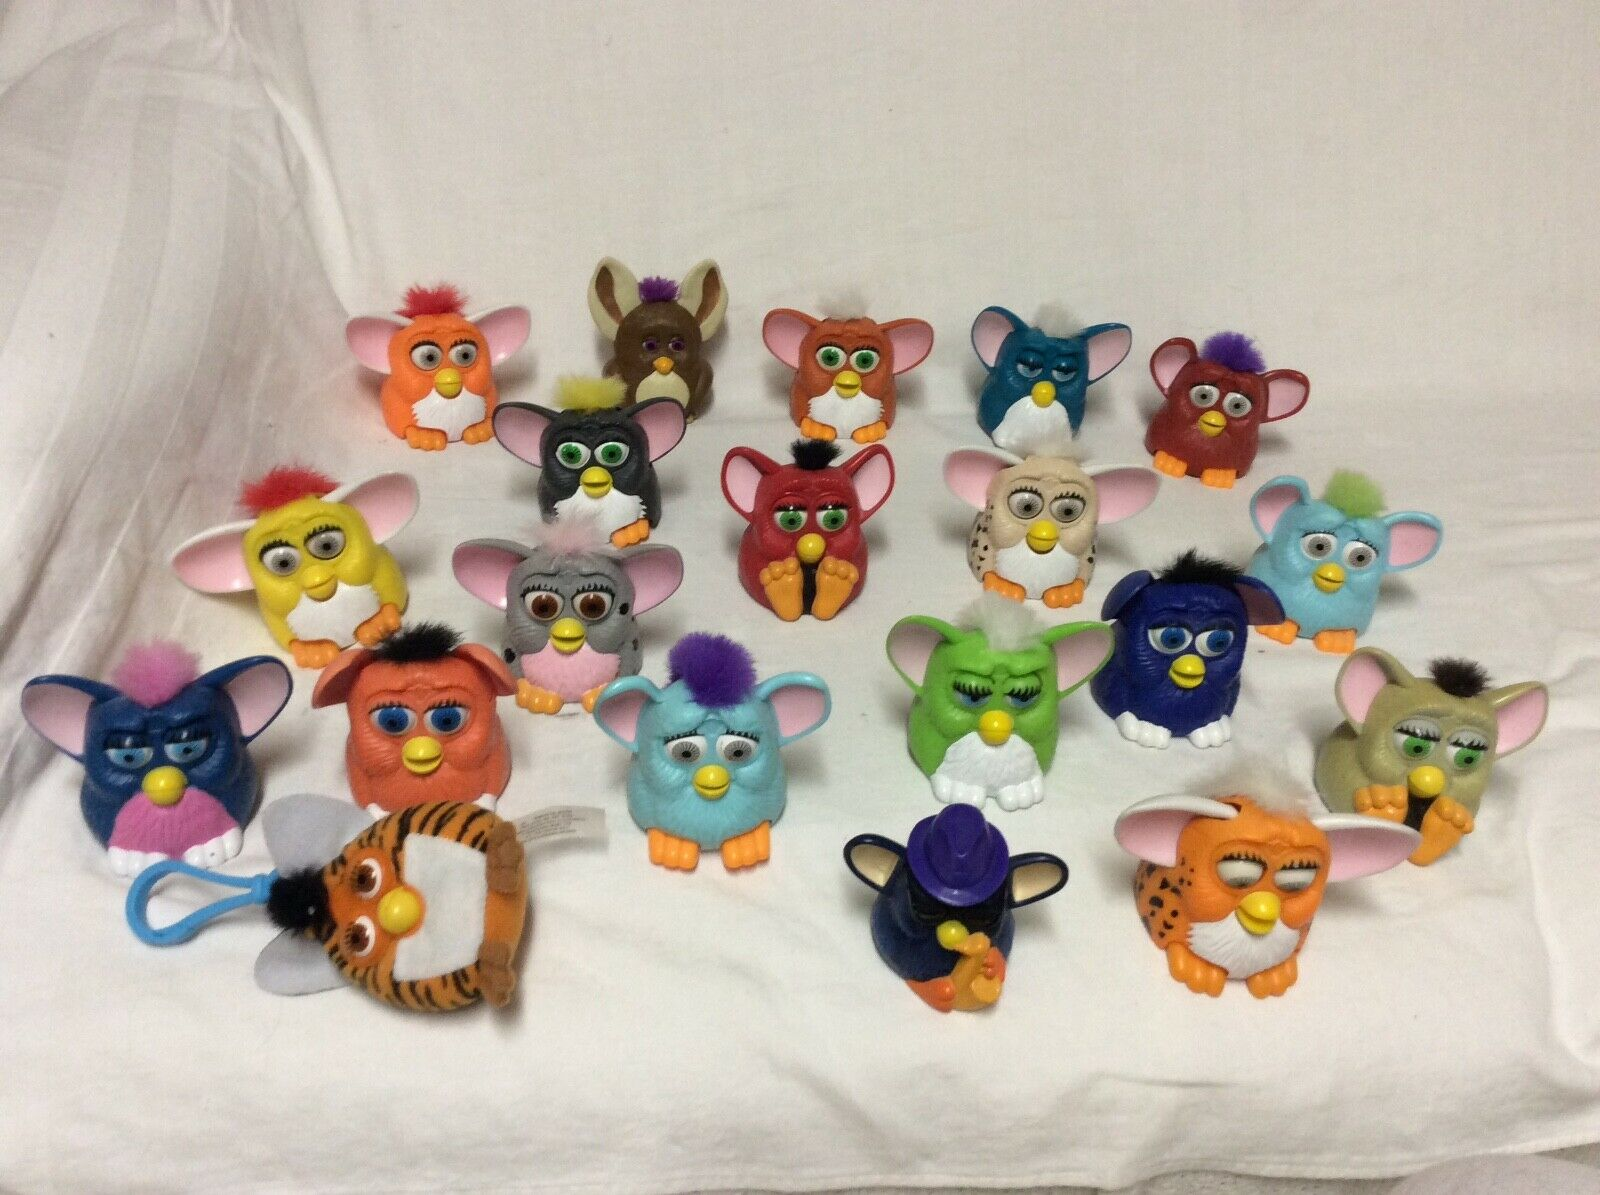 Vintage Furby babies 1998 Toys